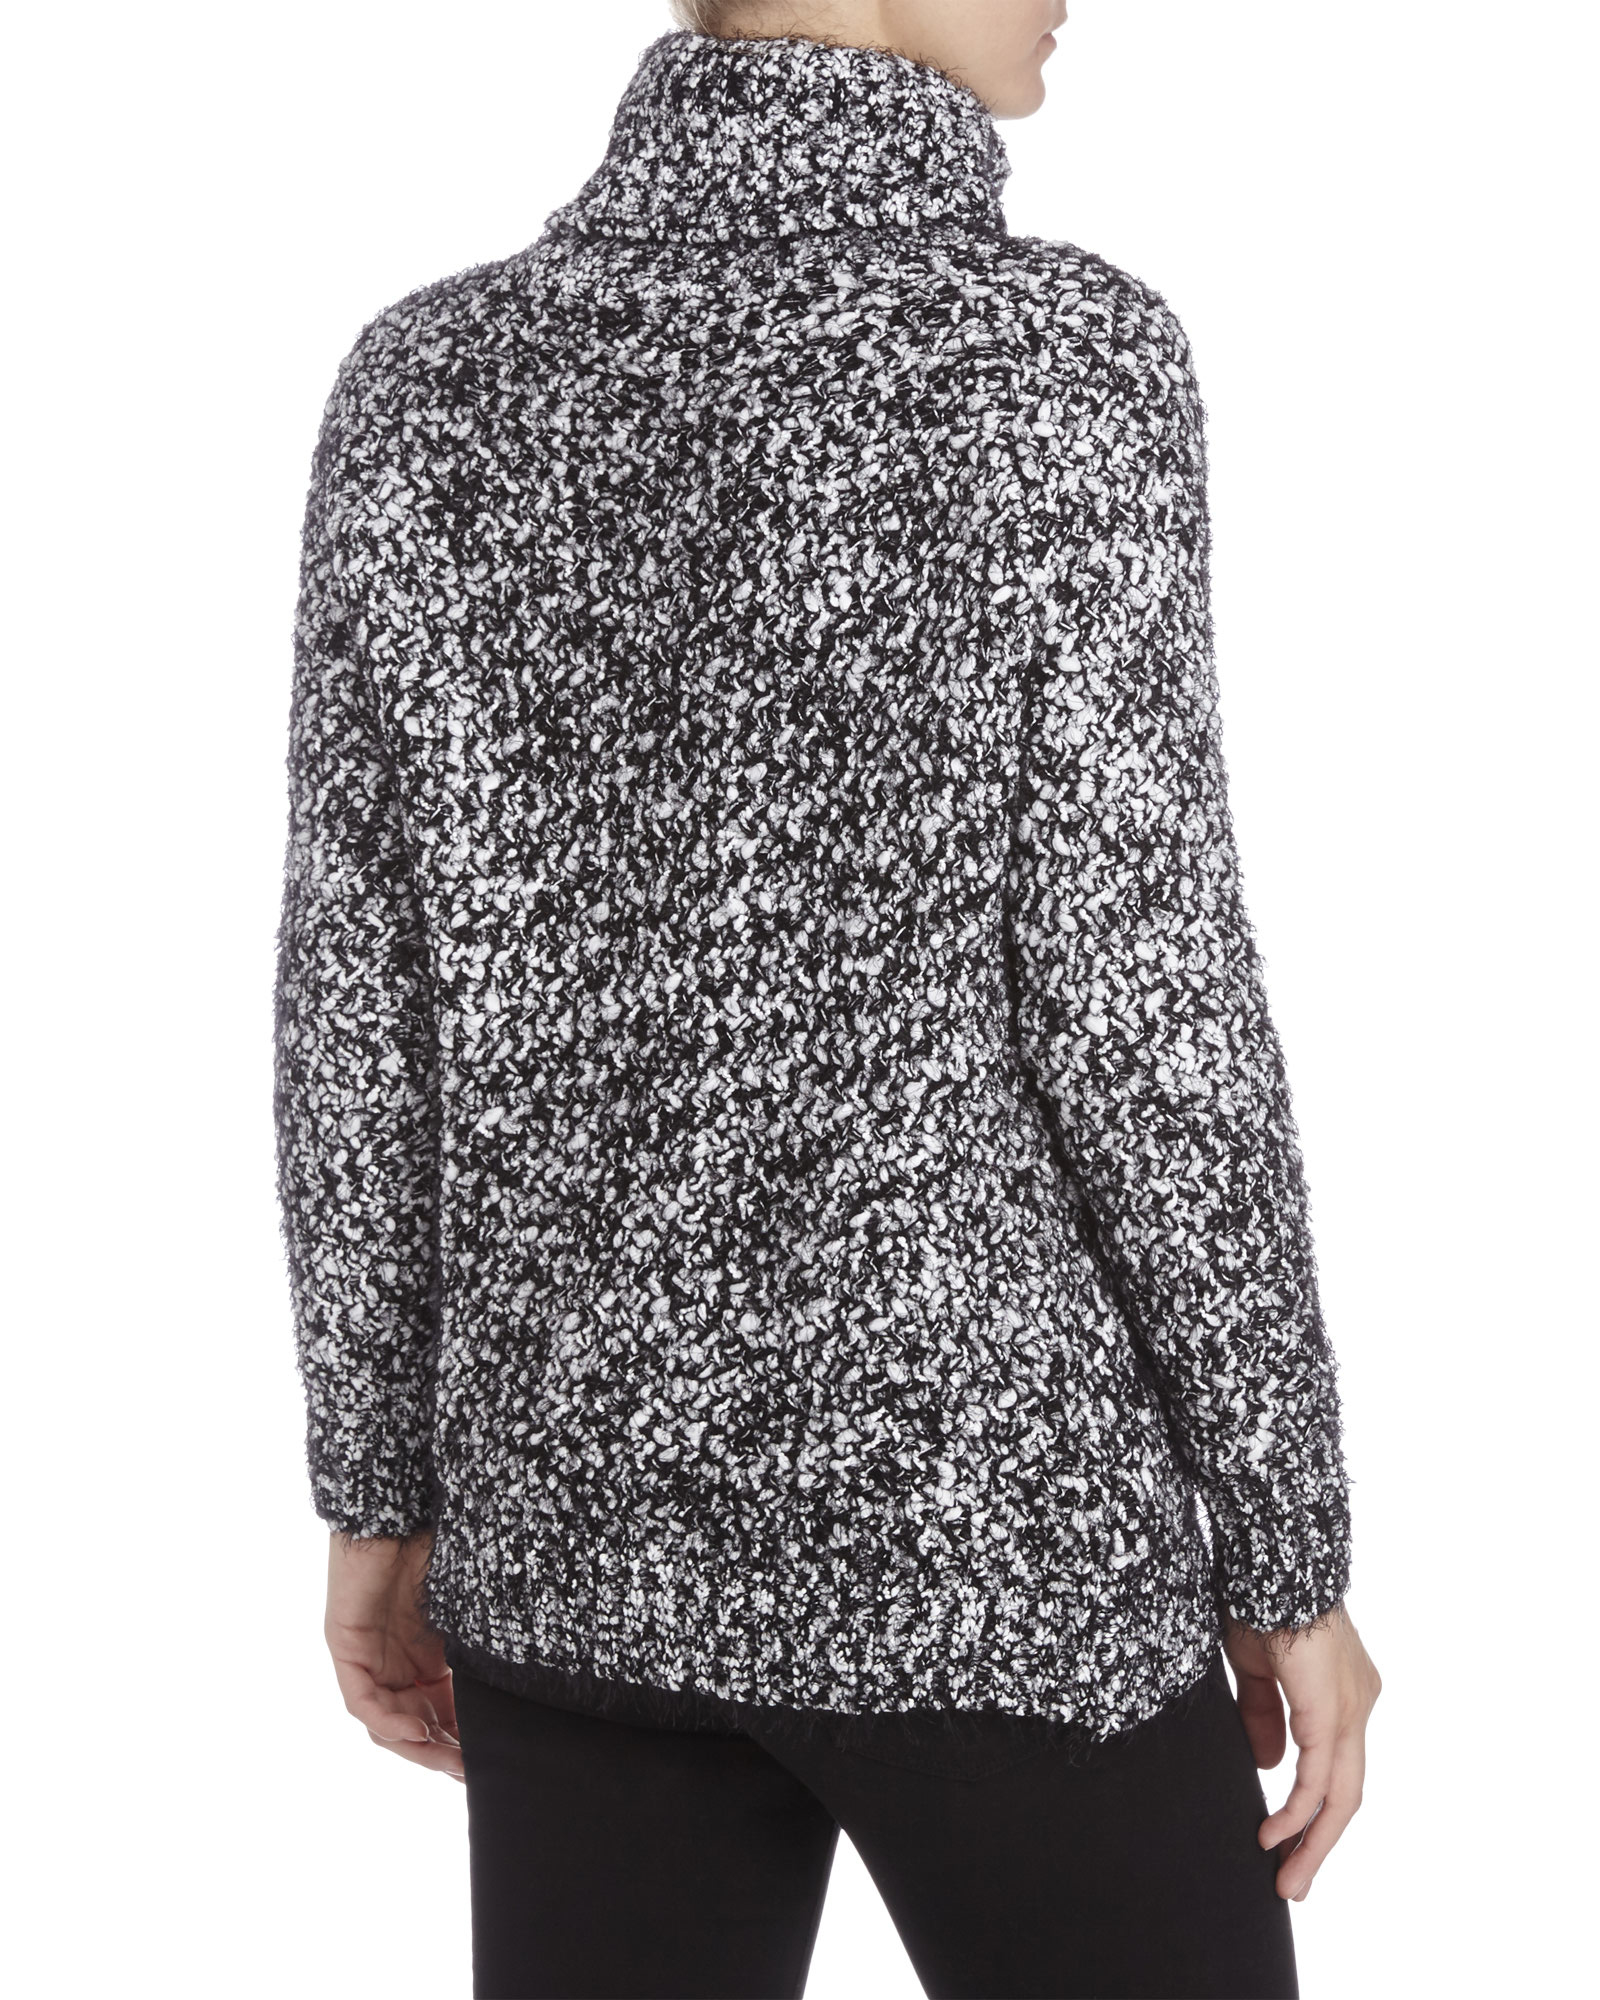 Pol Black & White Marled Knit Turtleneck Sweater in Black | Lyst